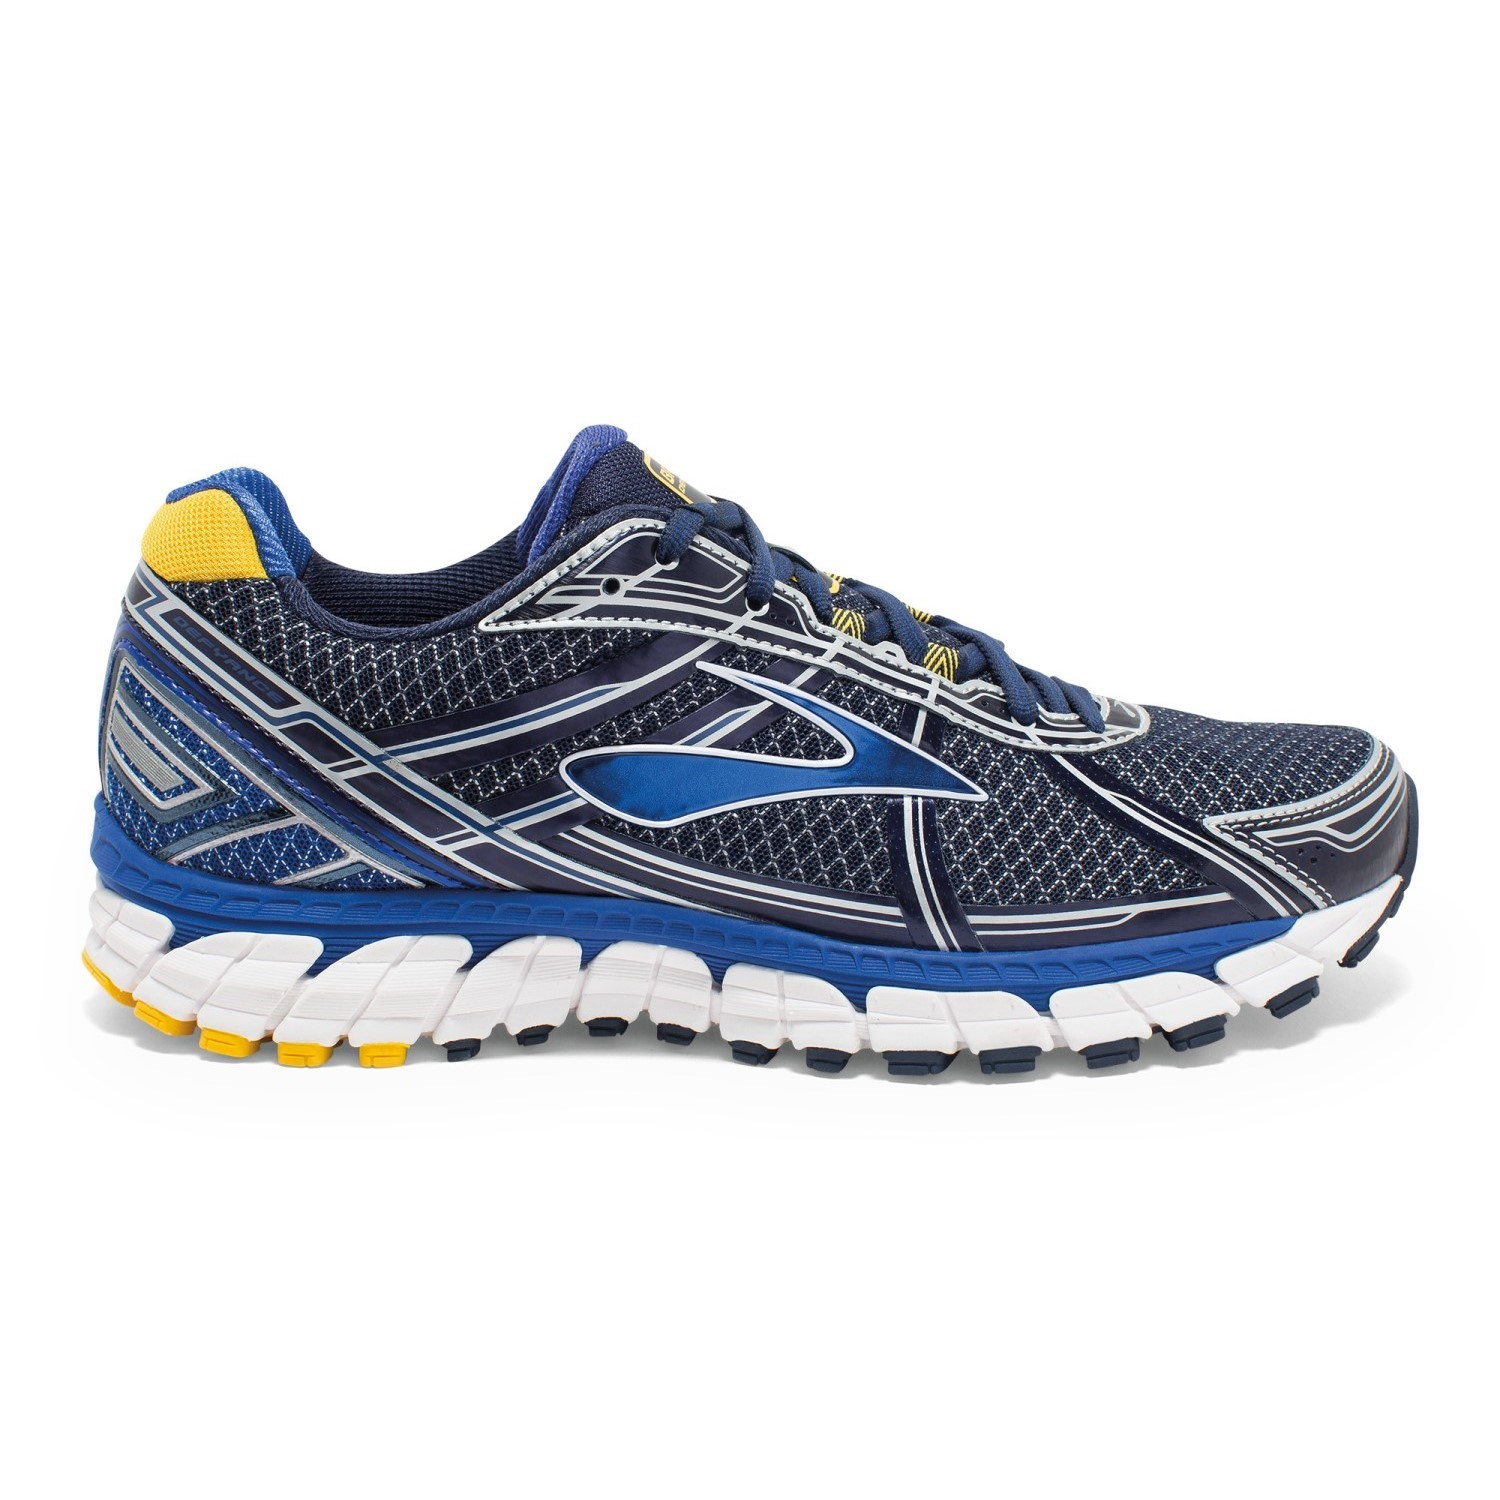 862dc605ccb Brooks Defyance 9 - Mens Running Shoes - Peacoat Surf The Web Lemon ...